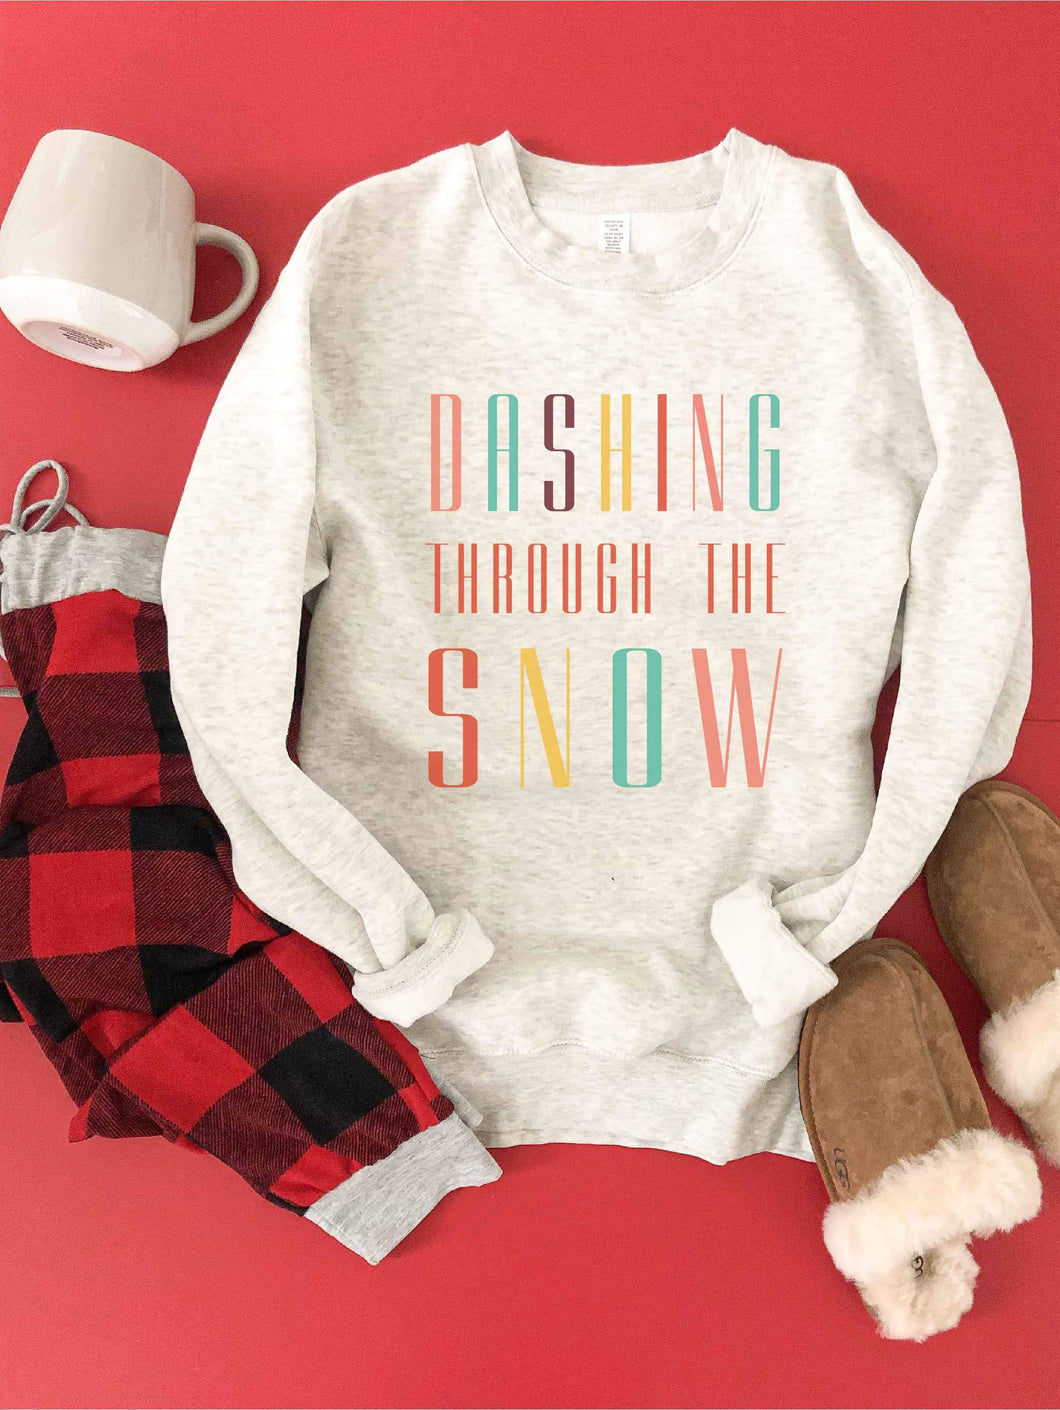 Dashing through the snow fleece sweatshirt Holiday French Terry raglan Lane seven and cotton heritage French Terry raglans